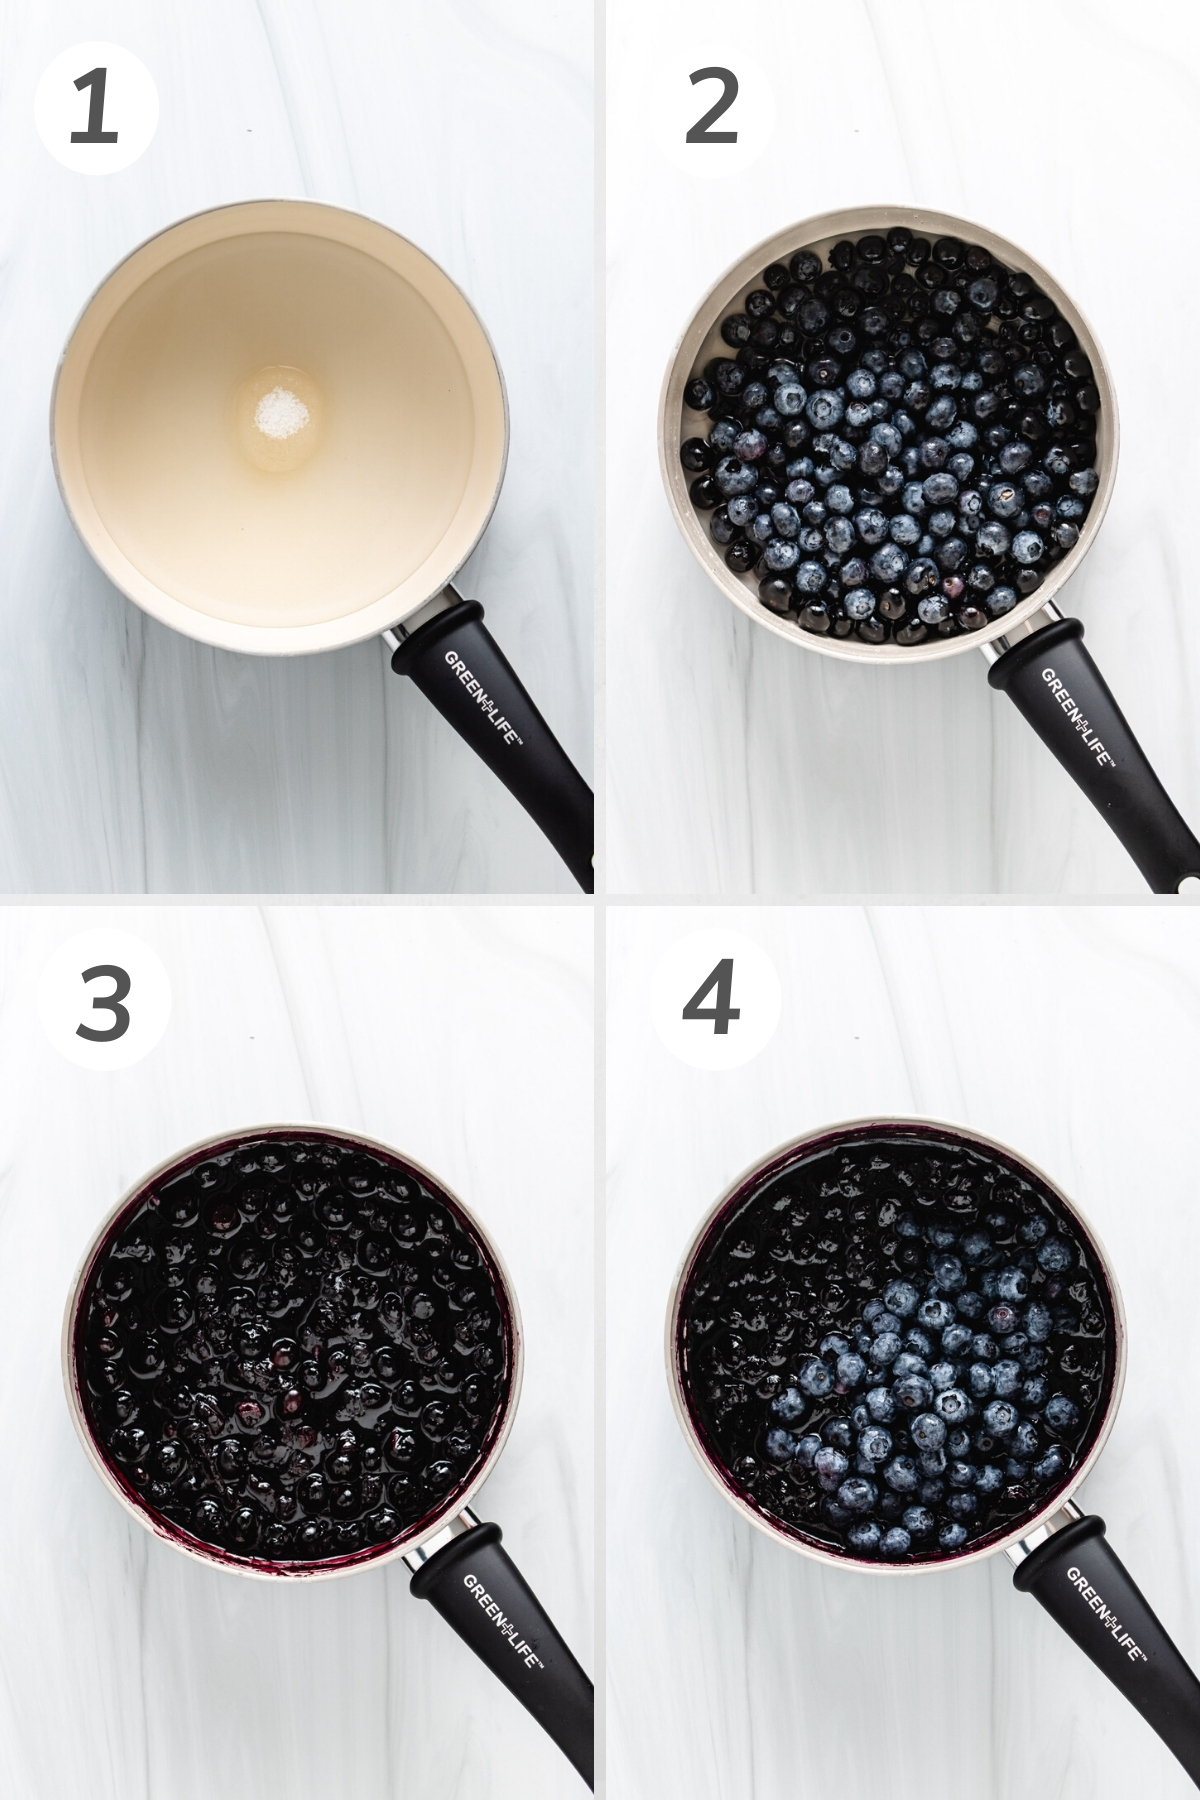 Collage showing how to make blueberry compote.